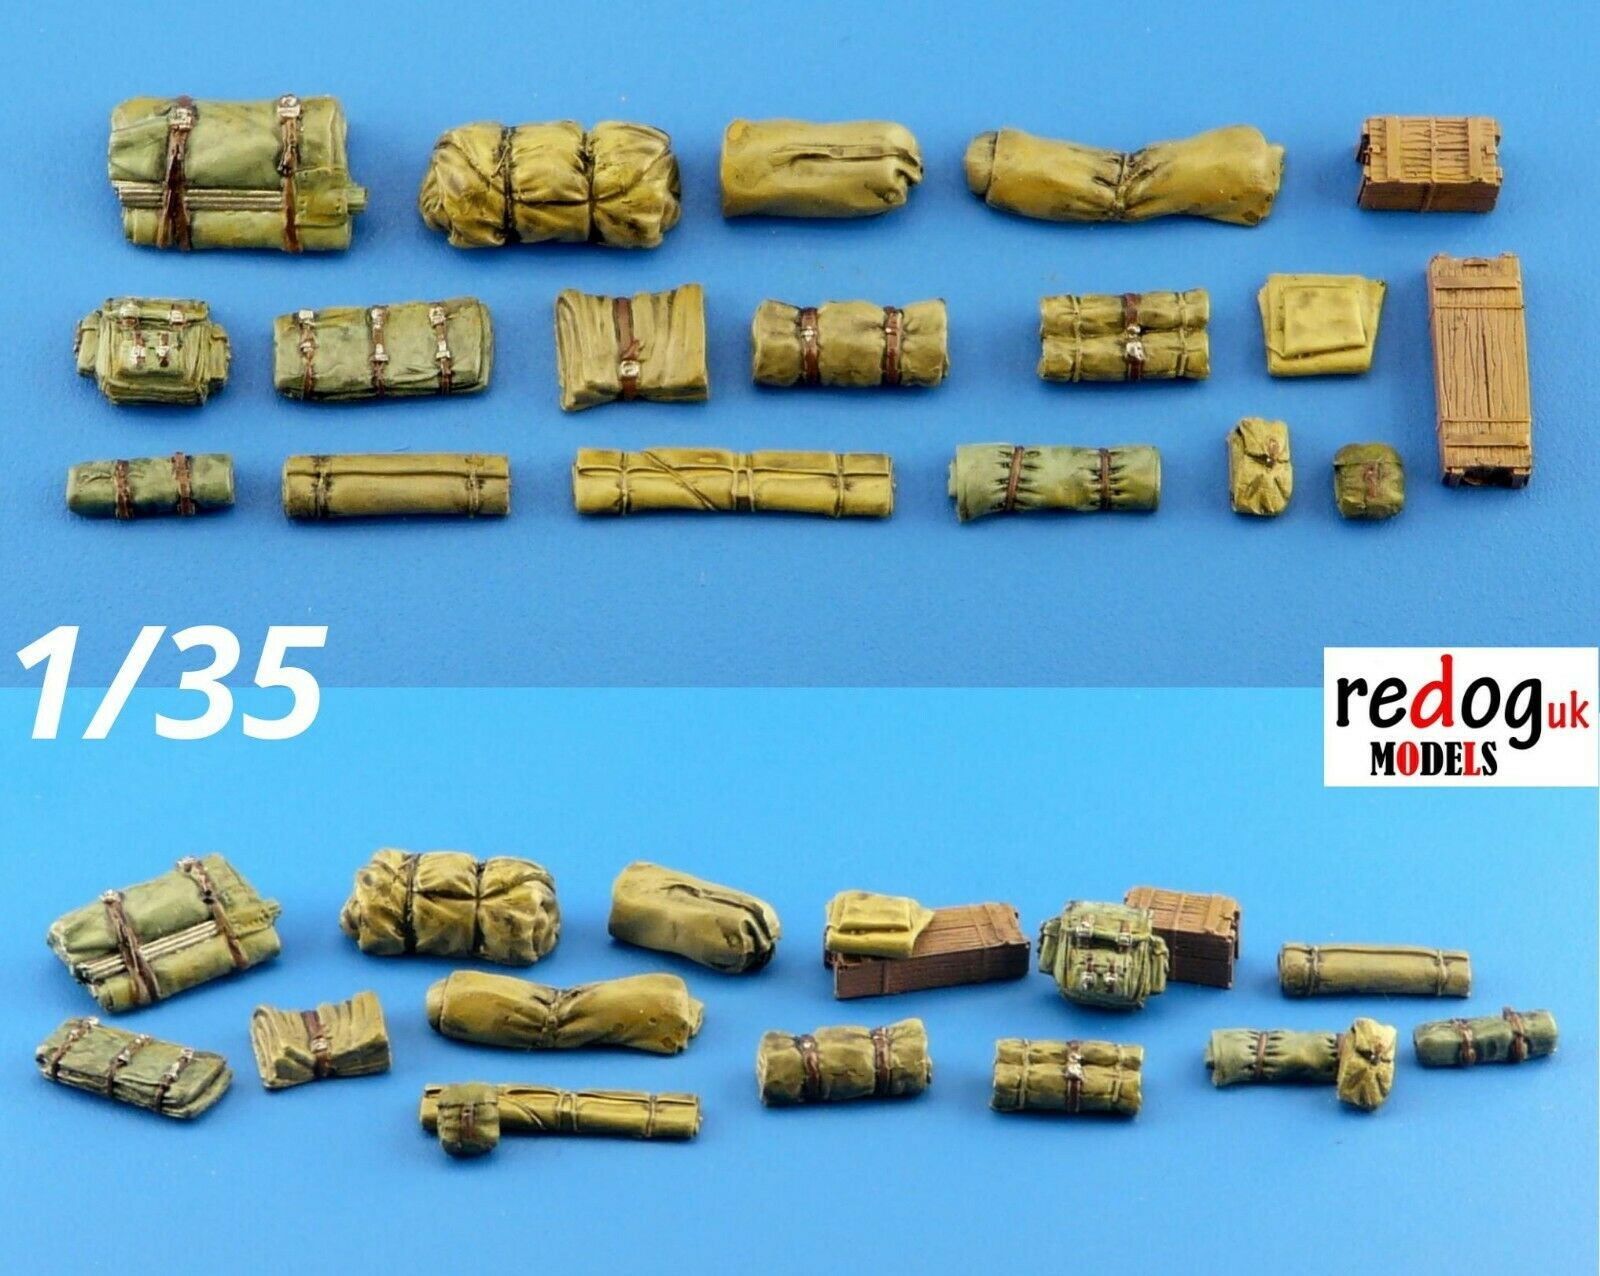 1/35 Military Scale Modelling Resin Stowage Kit Diorama Accessories Kit 2 - redoguk